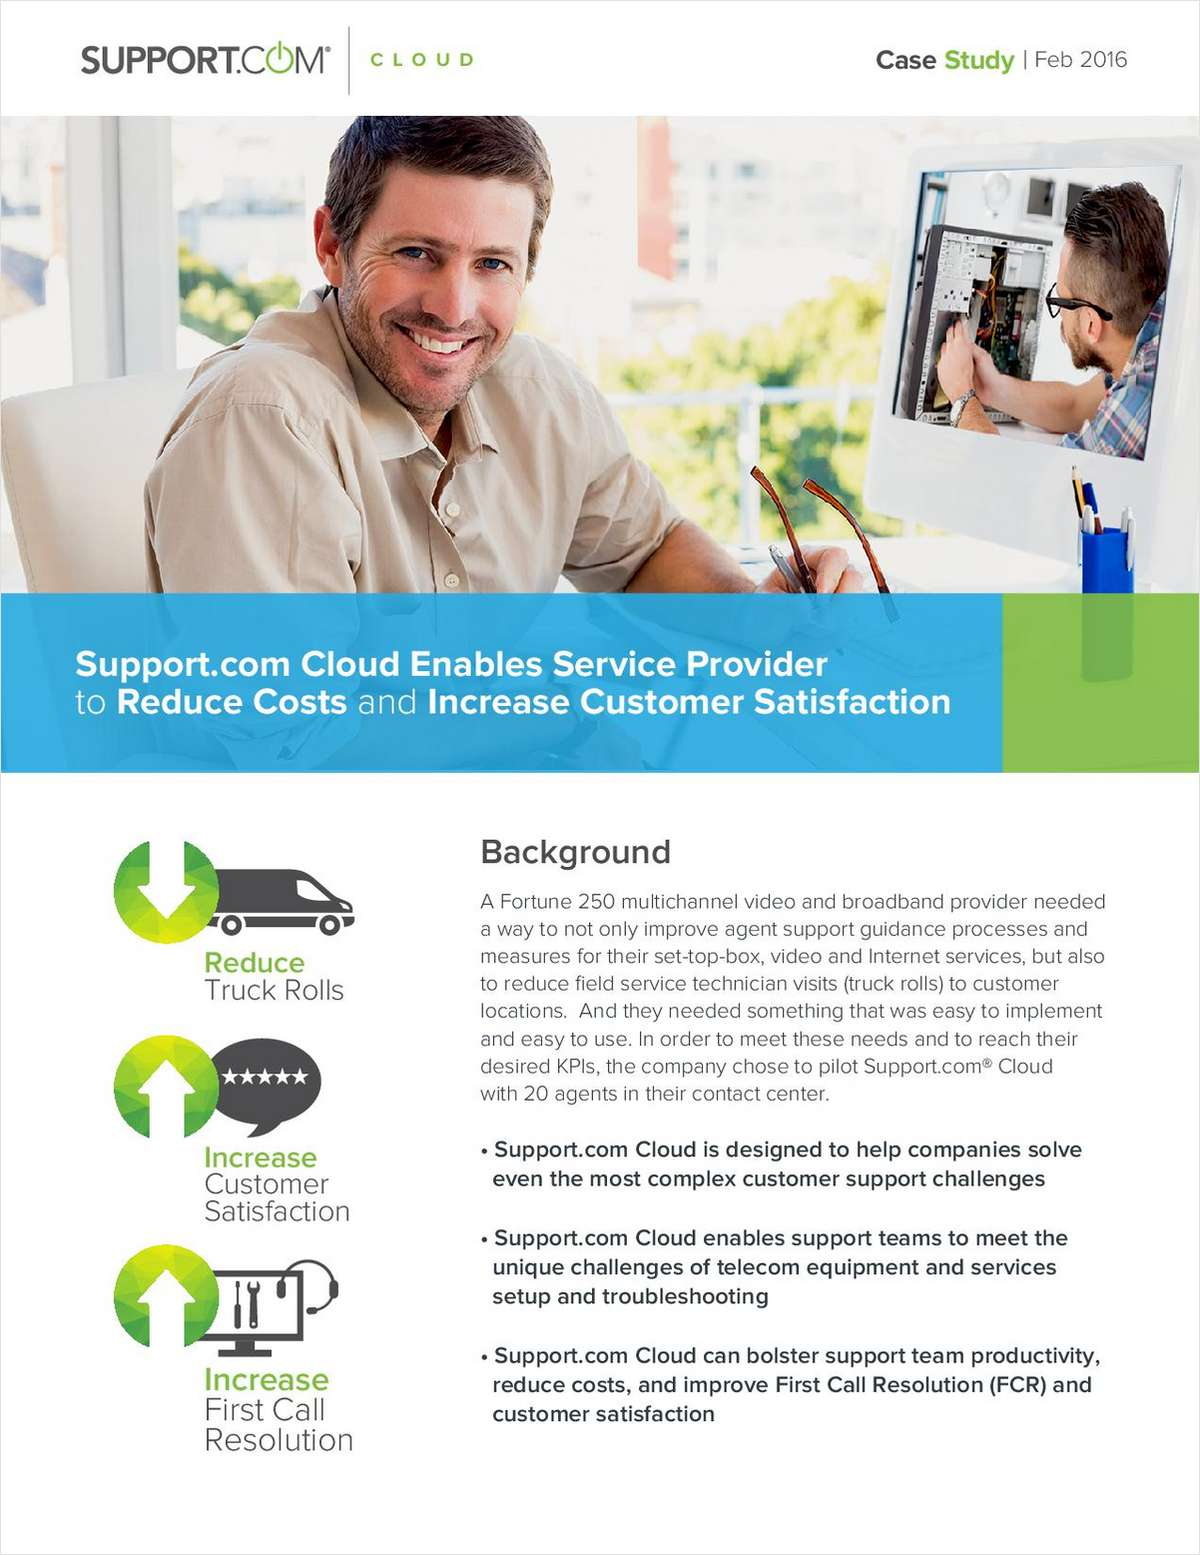 Support.com Cloud Enables Service Providers to Reduce Cost and Increase Customer Satisfaction